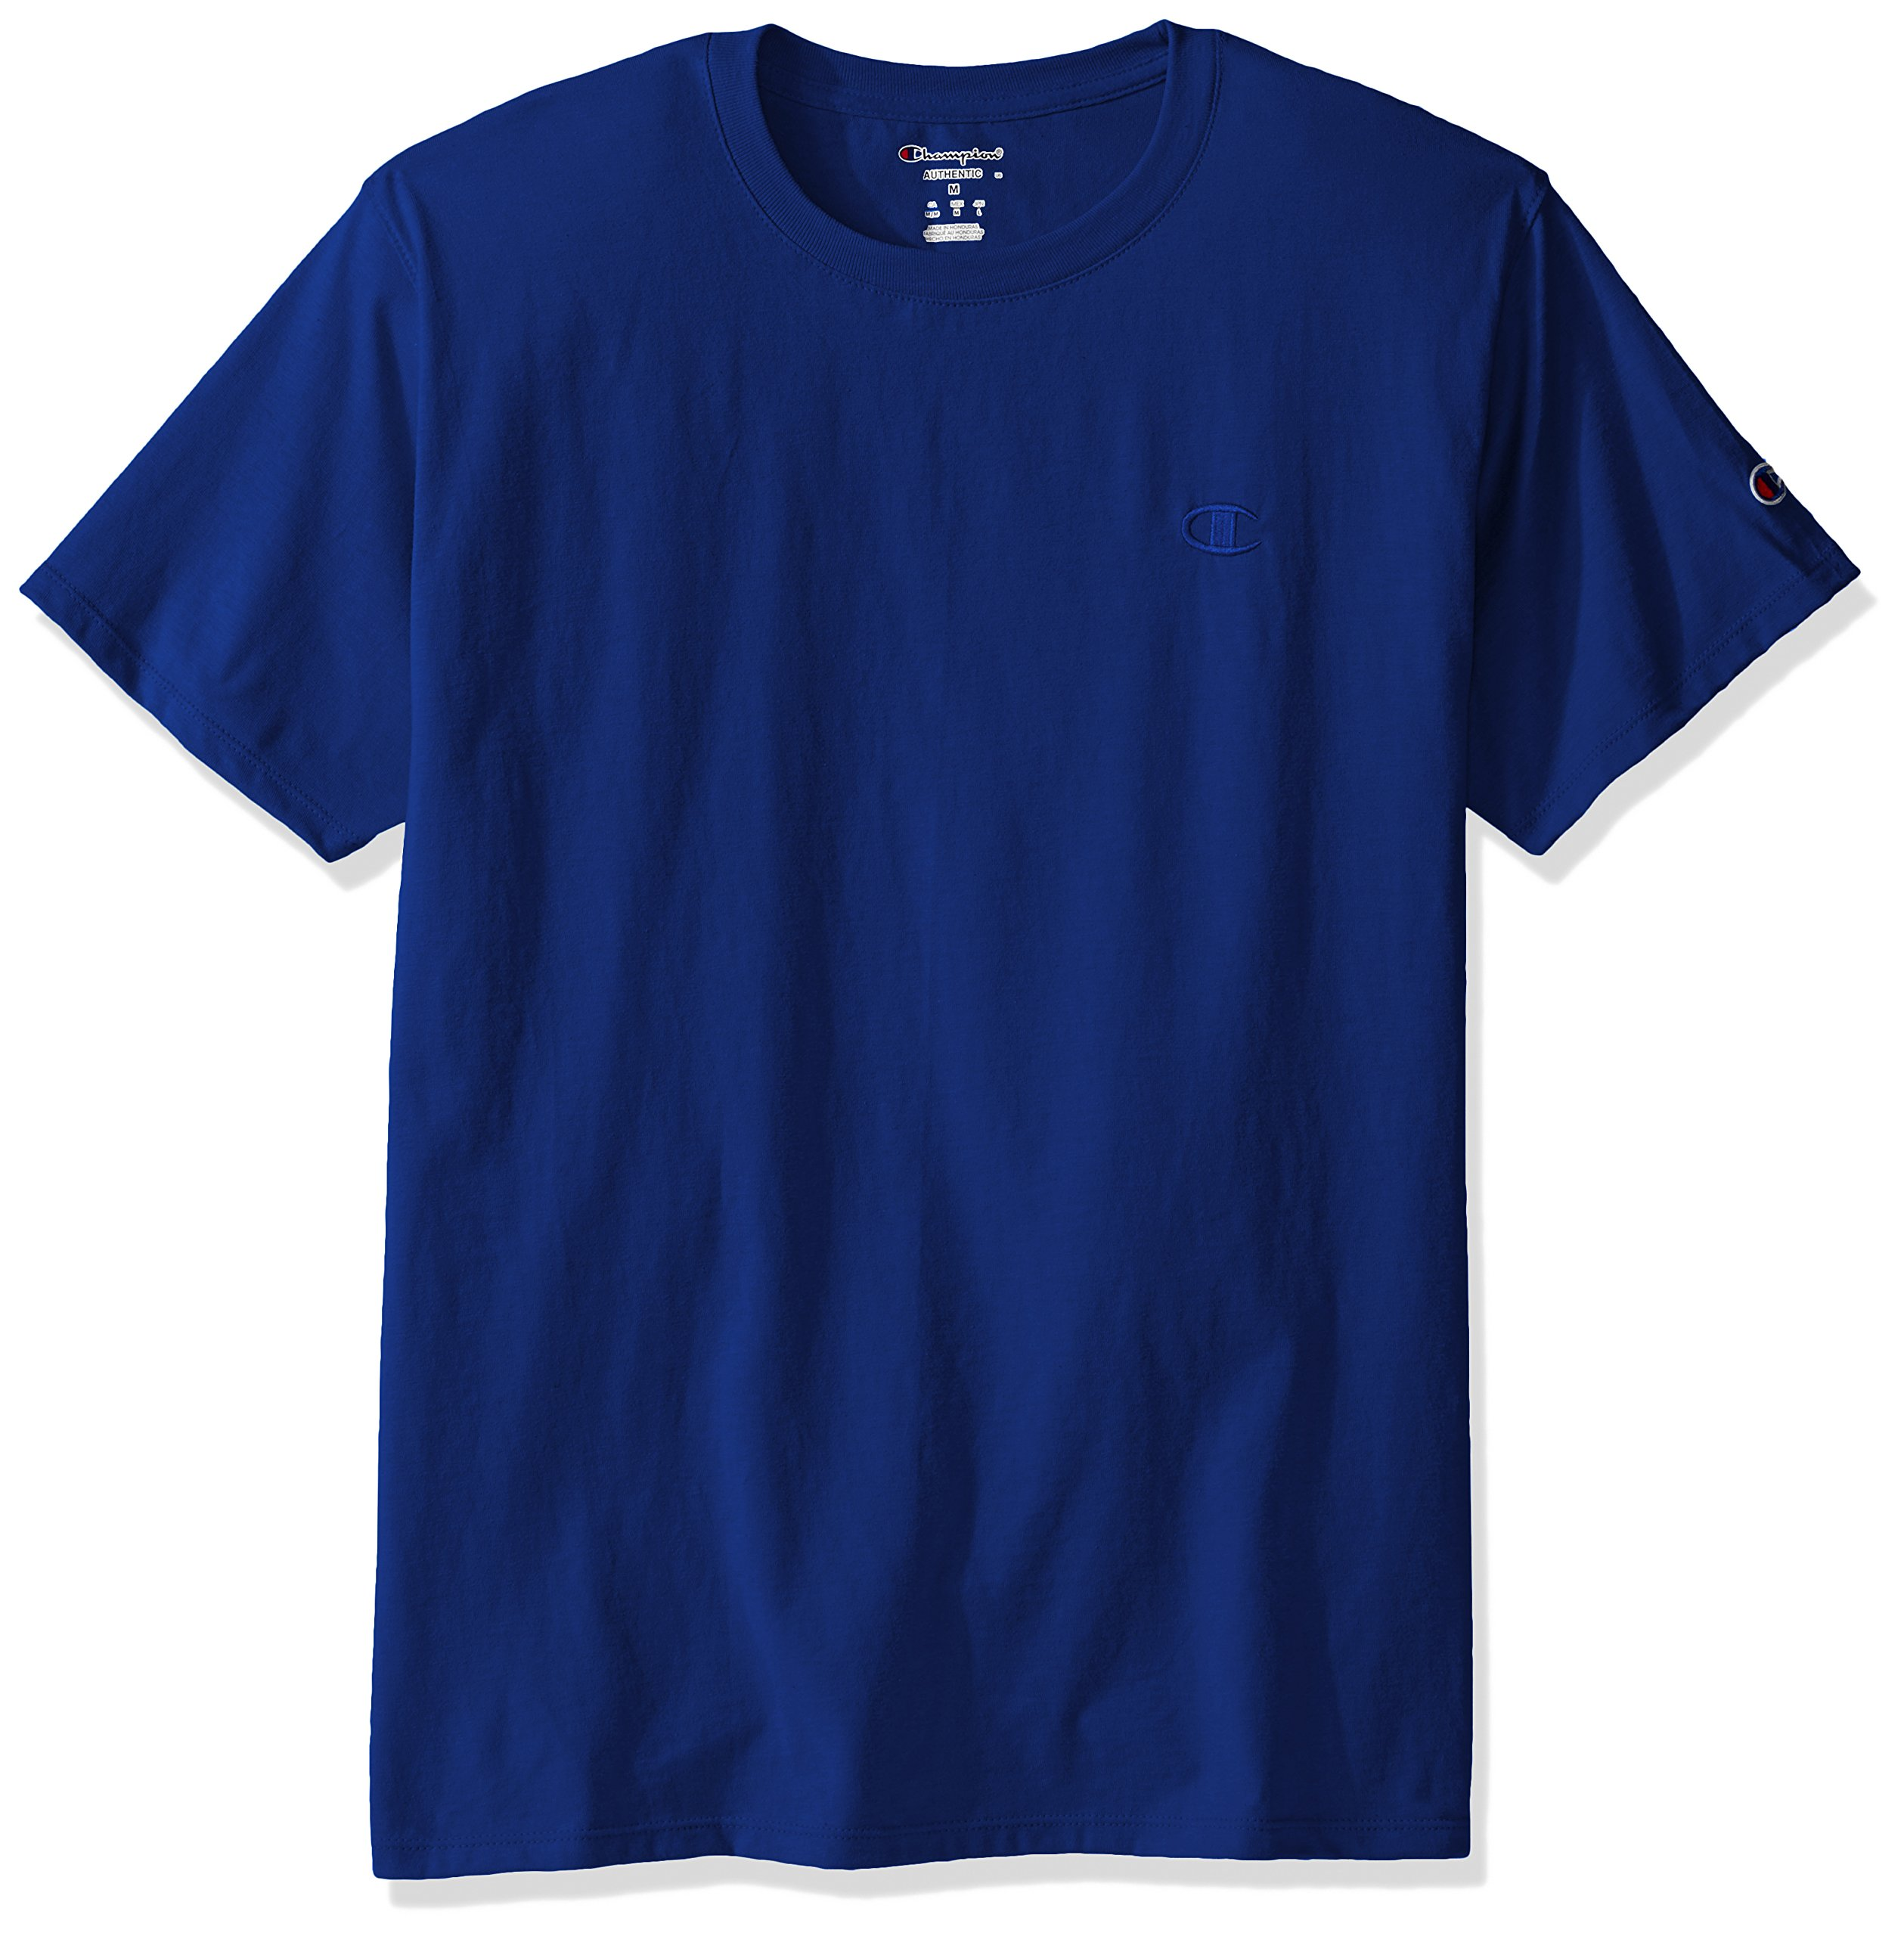 Champion Men's Classic Jersey T-Shirt, Surf the Web, XL by Champion